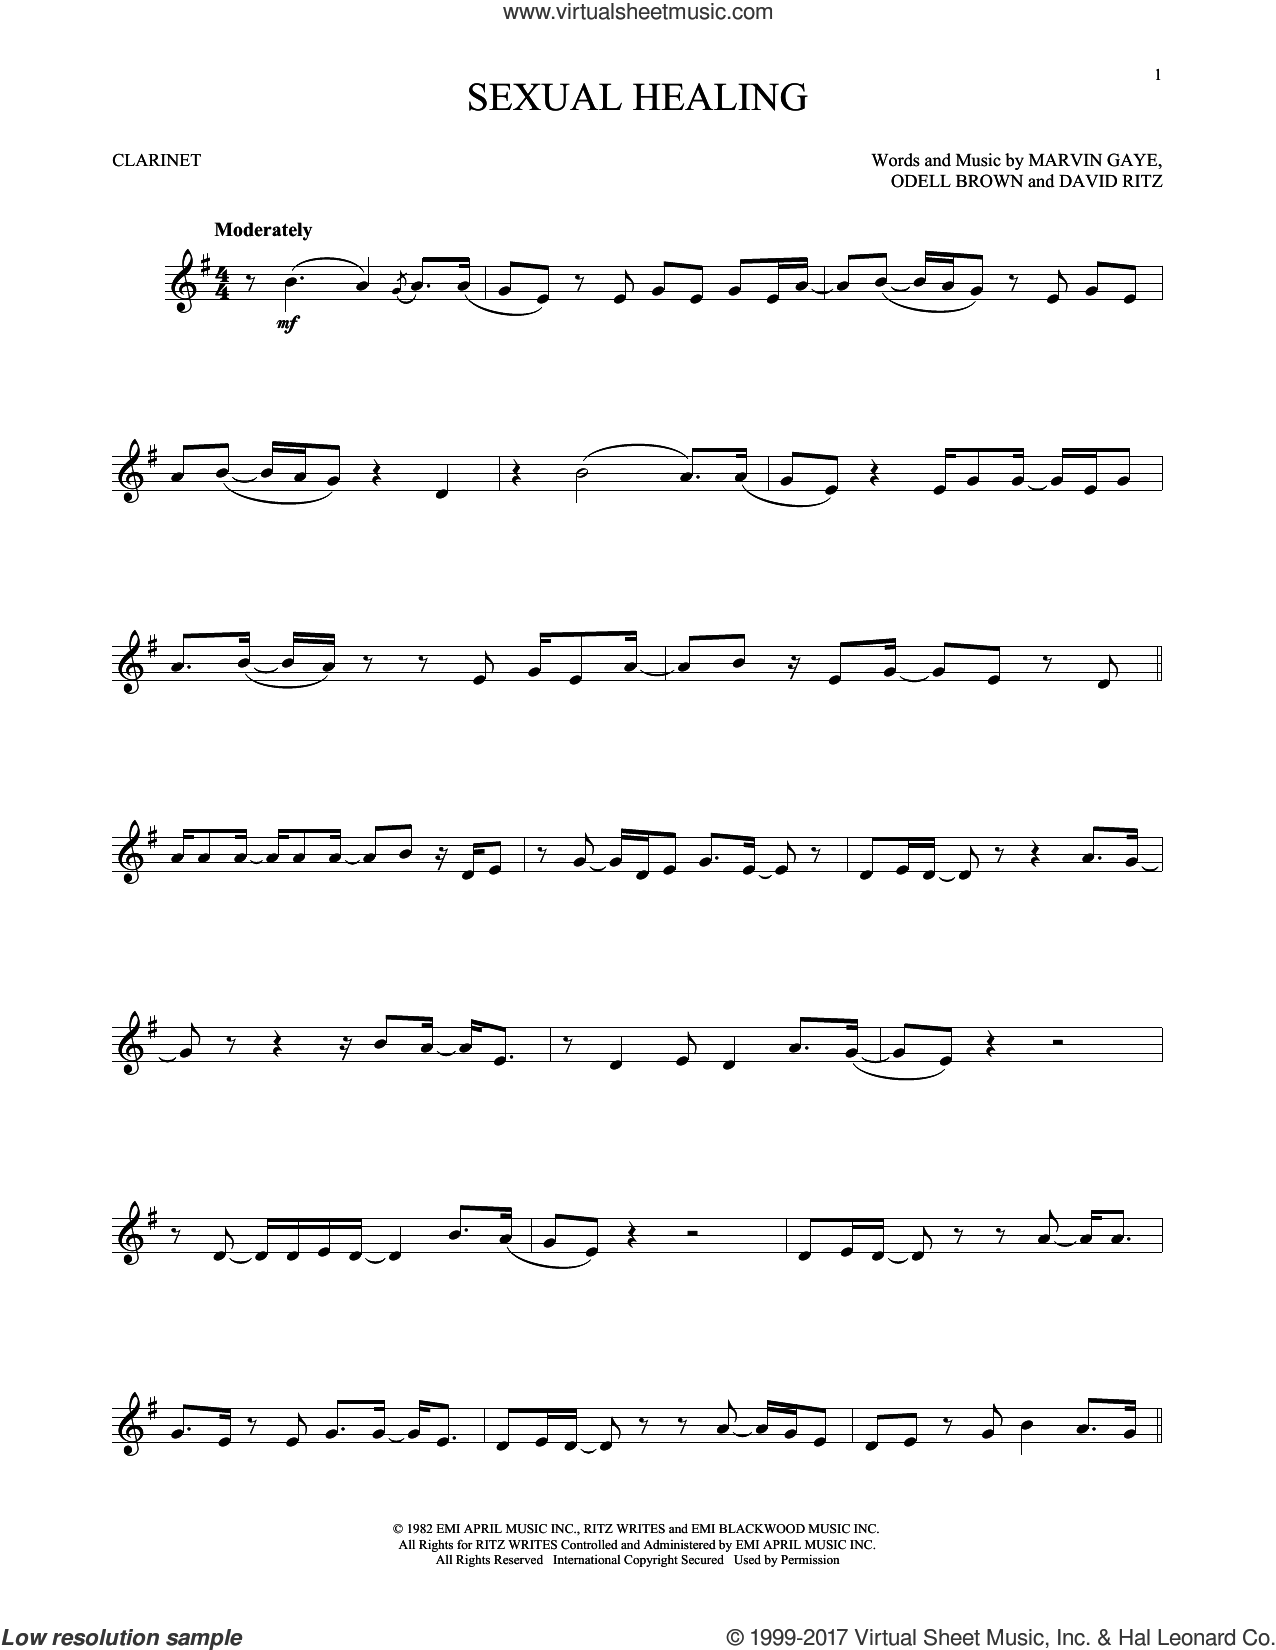 Sexual Healing sheet music for clarinet solo by Marvin Gaye, David Ritz and Odell Brown, intermediate skill level